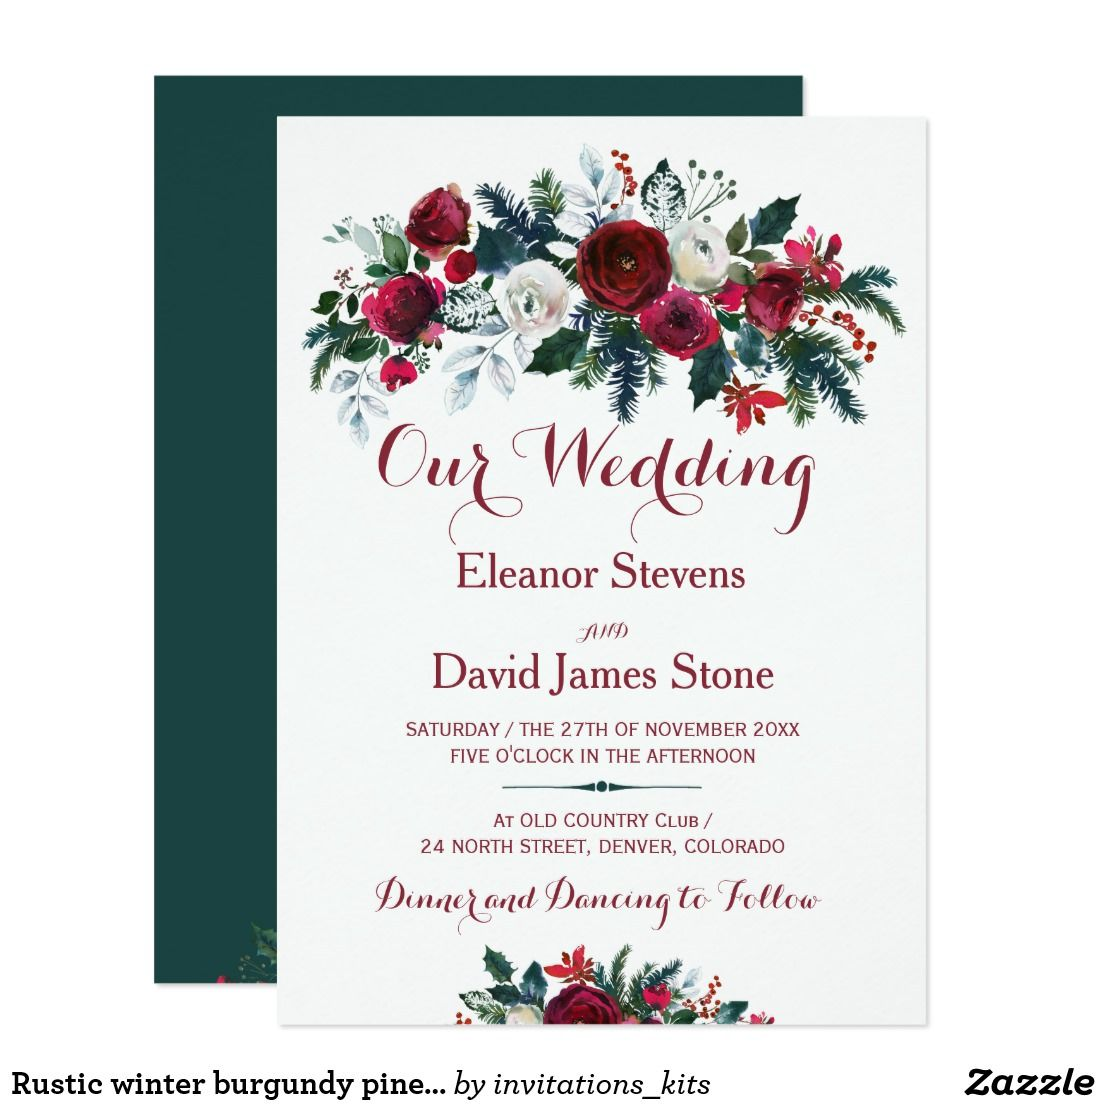 Rustic winter burgundy pine green floral wedding invitation ...